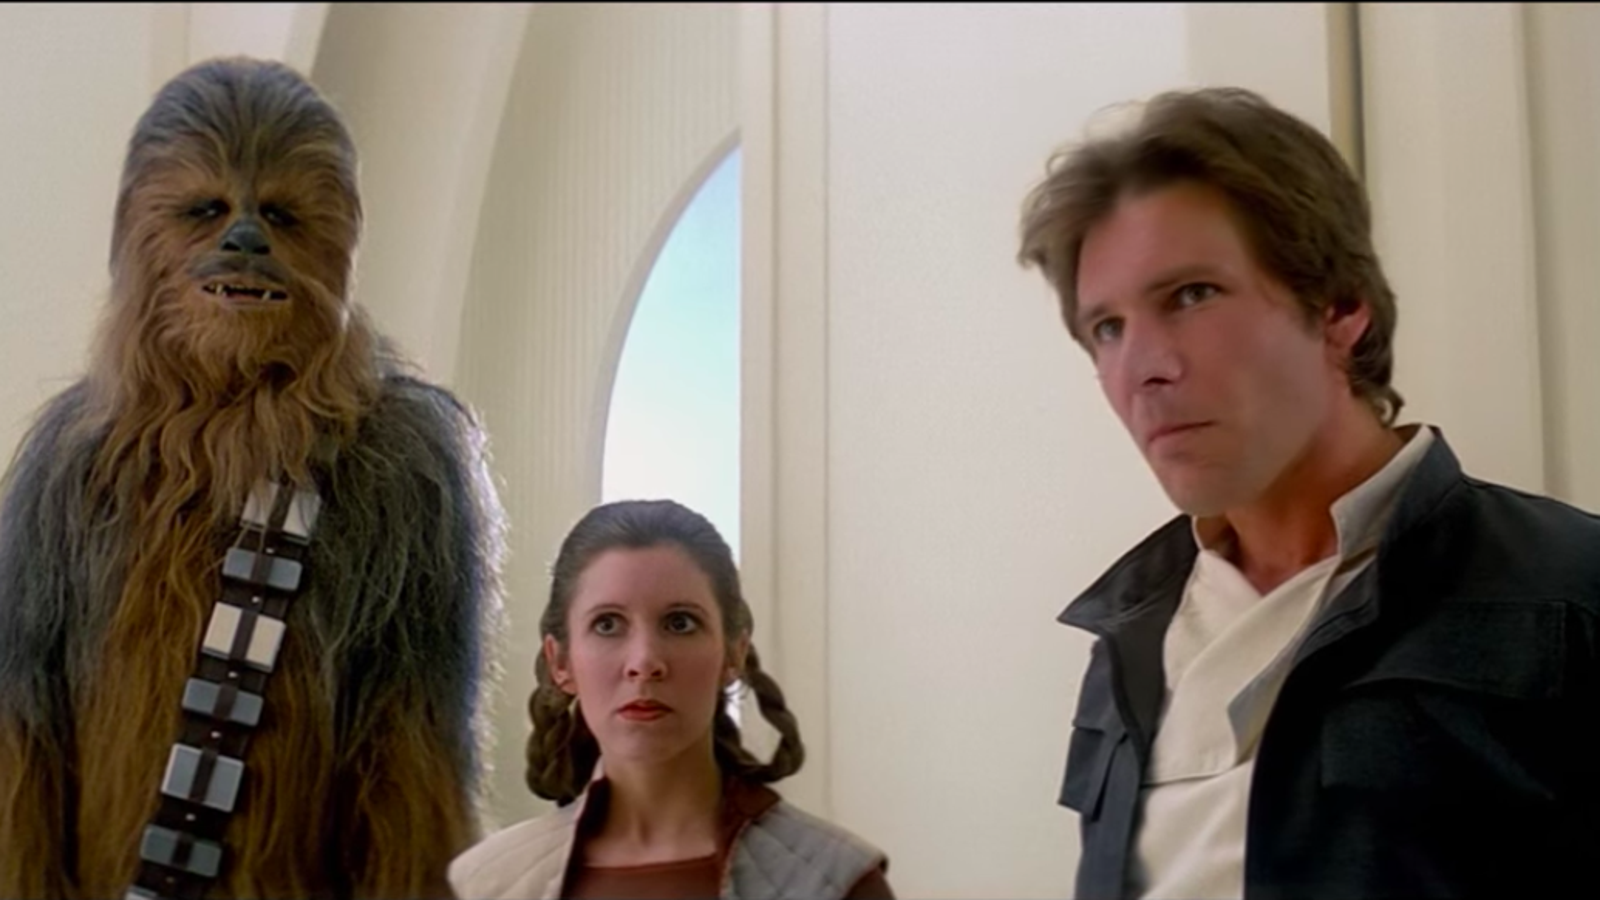 Yep, Han and Leia were definitely either drunk or high when they showed up on Cloud City